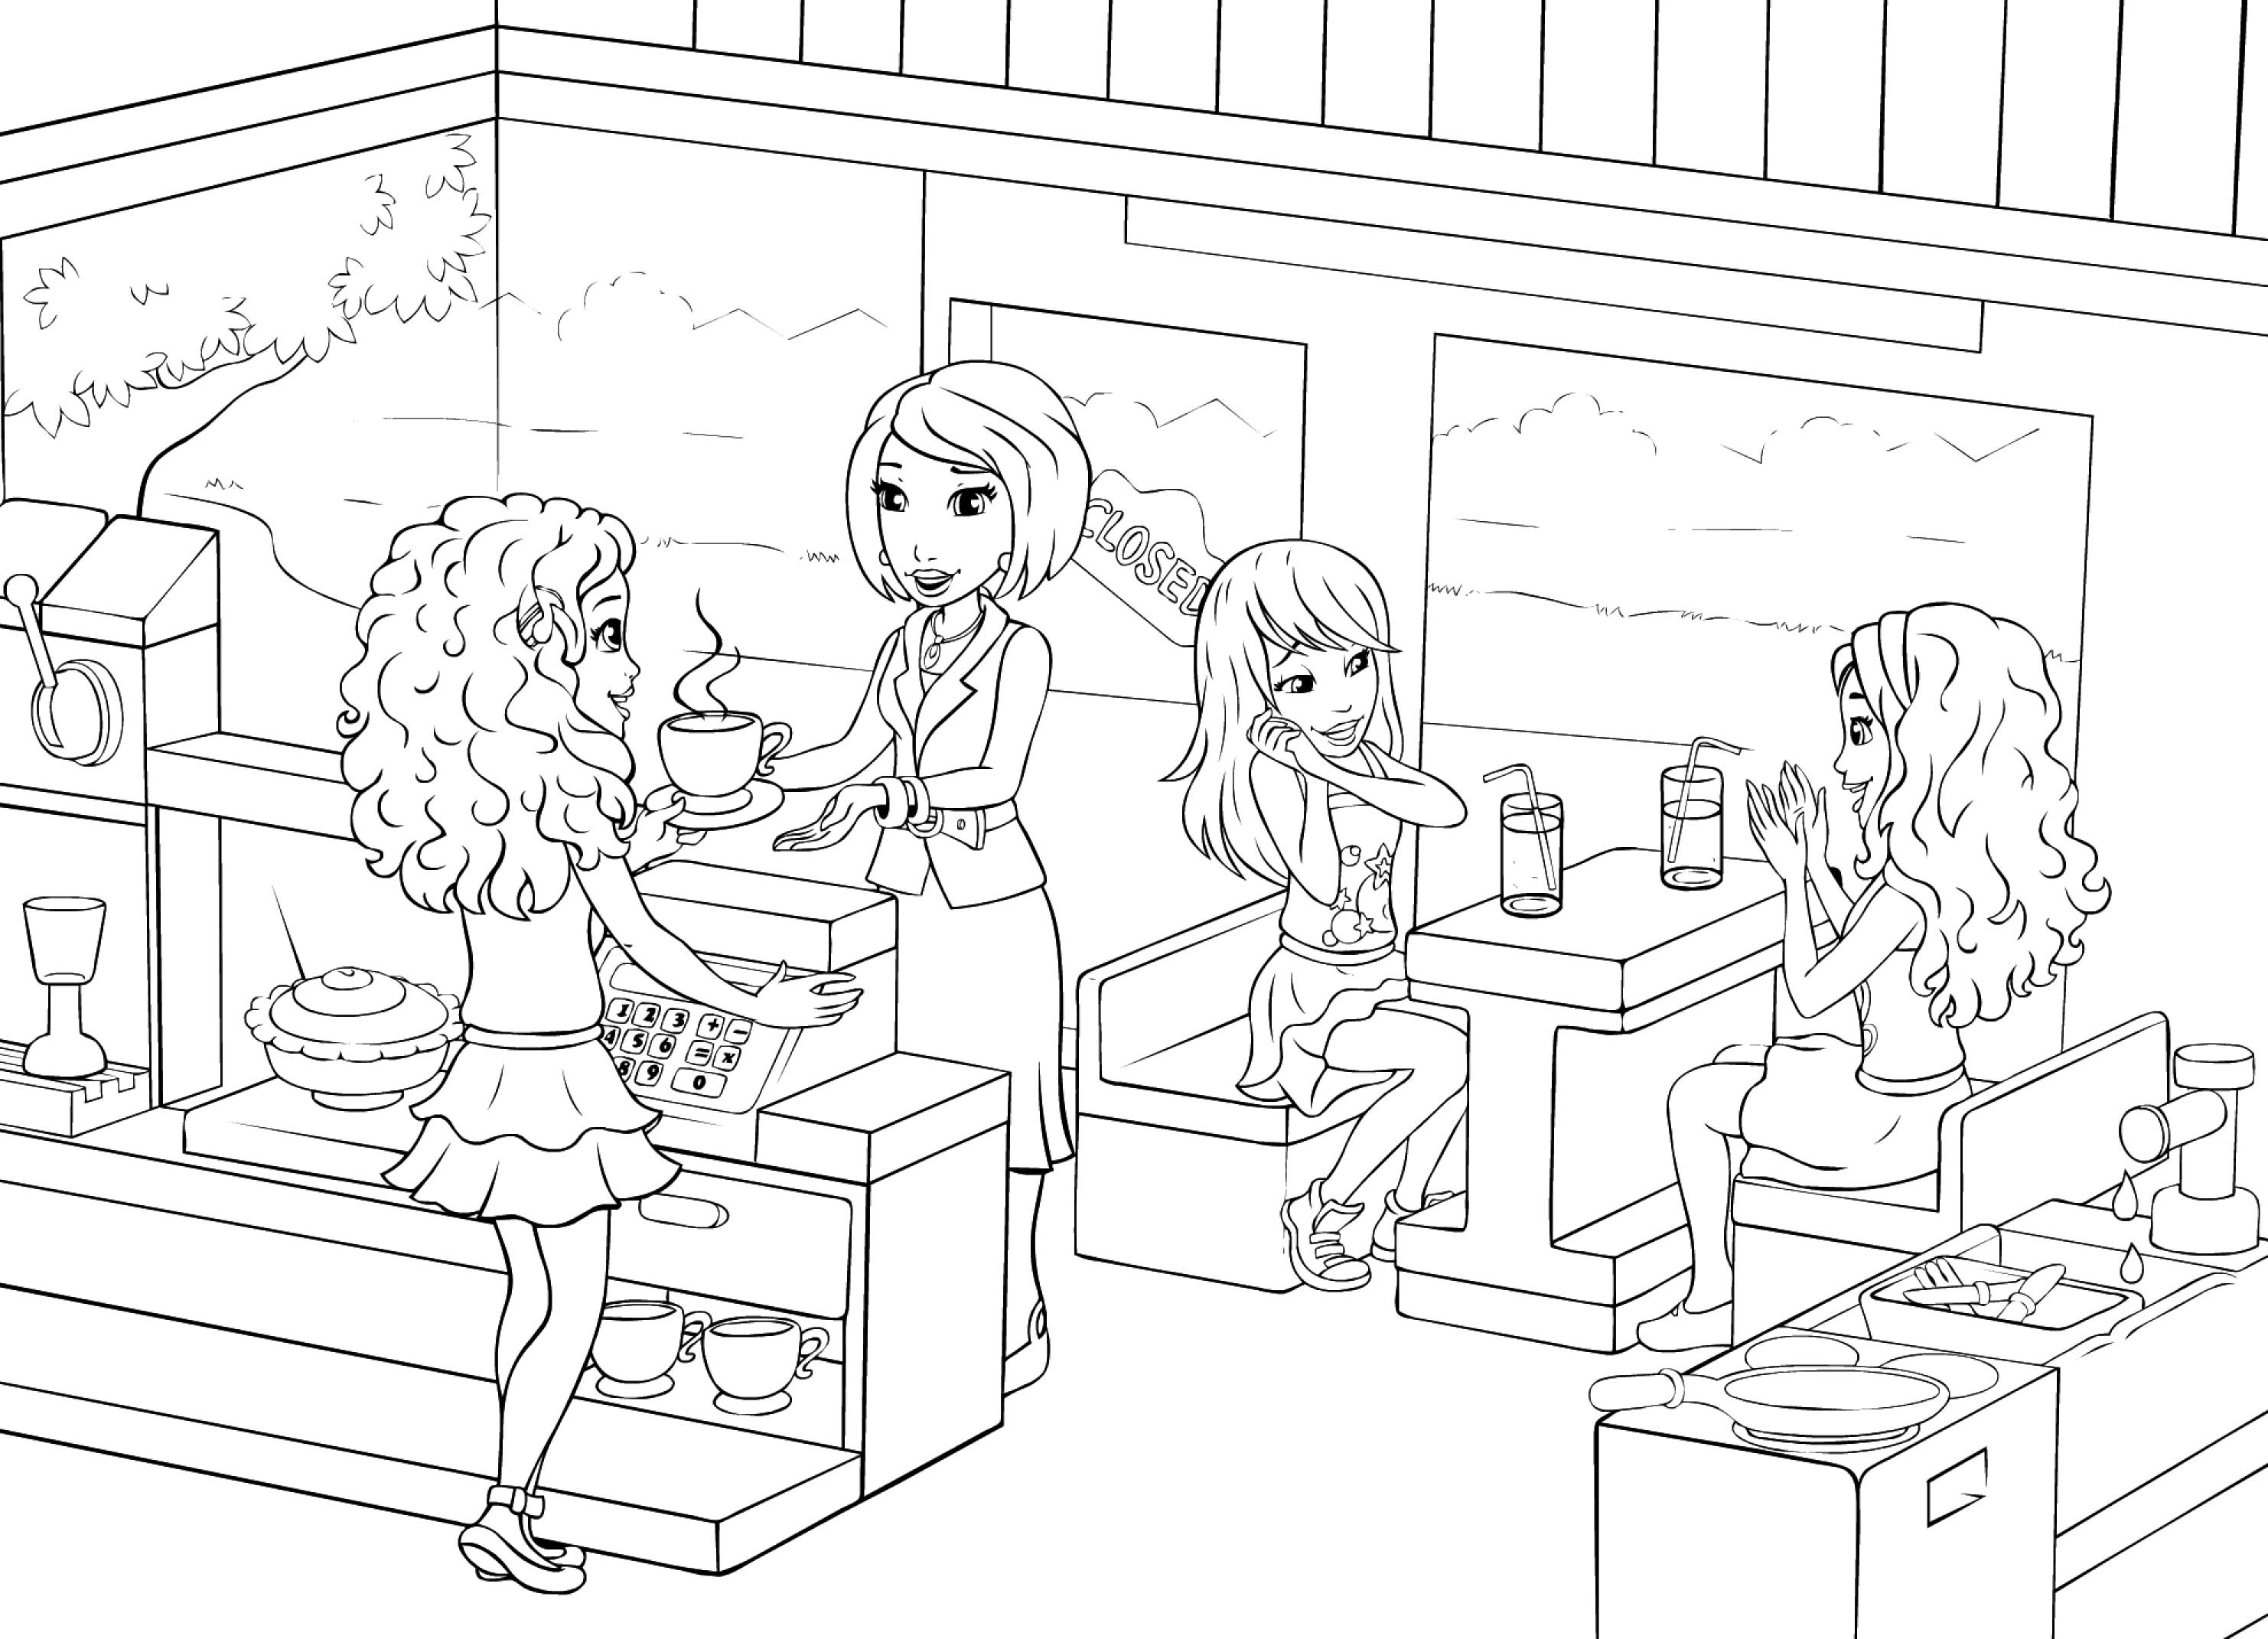 Coloriage Lego Friends En Ligne serapportantà Dessin Animé Lego Friends